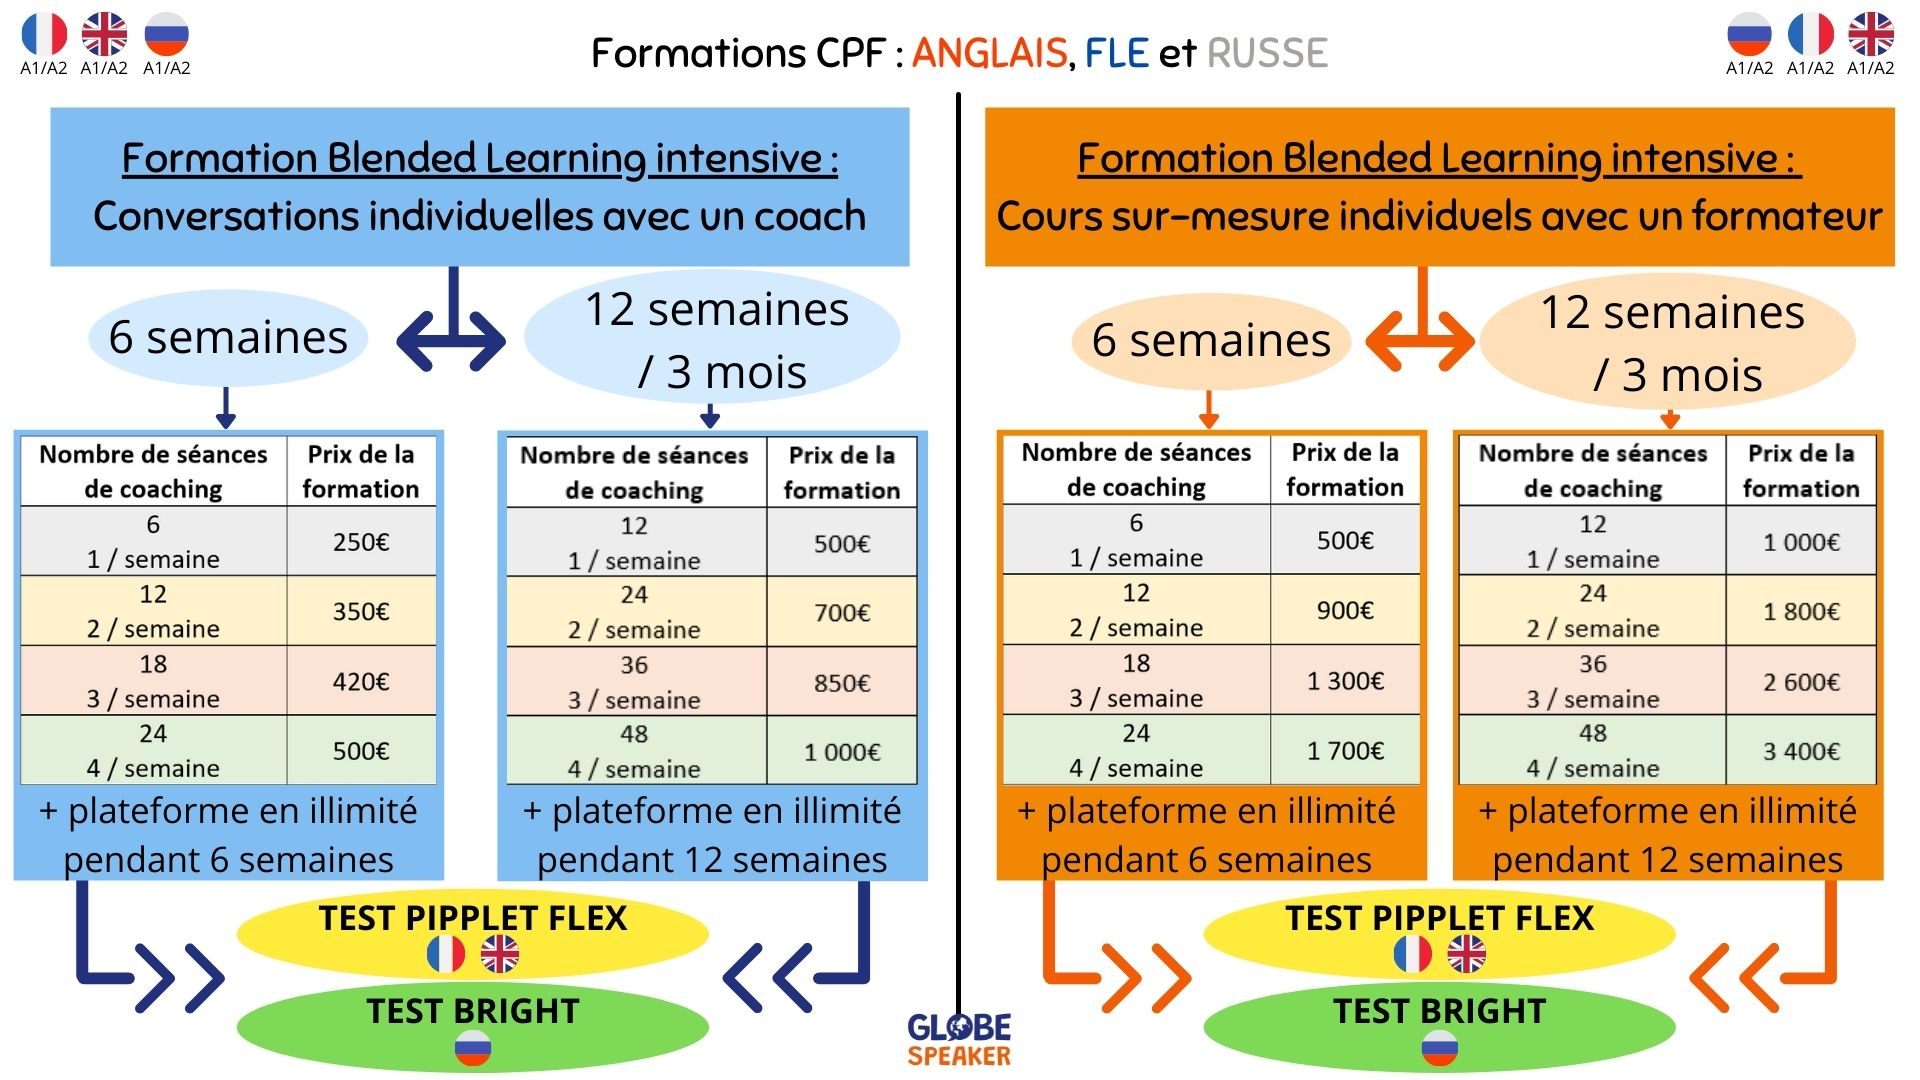 formations Globe Speaker CPF FLE ANGLAIS RUSSE